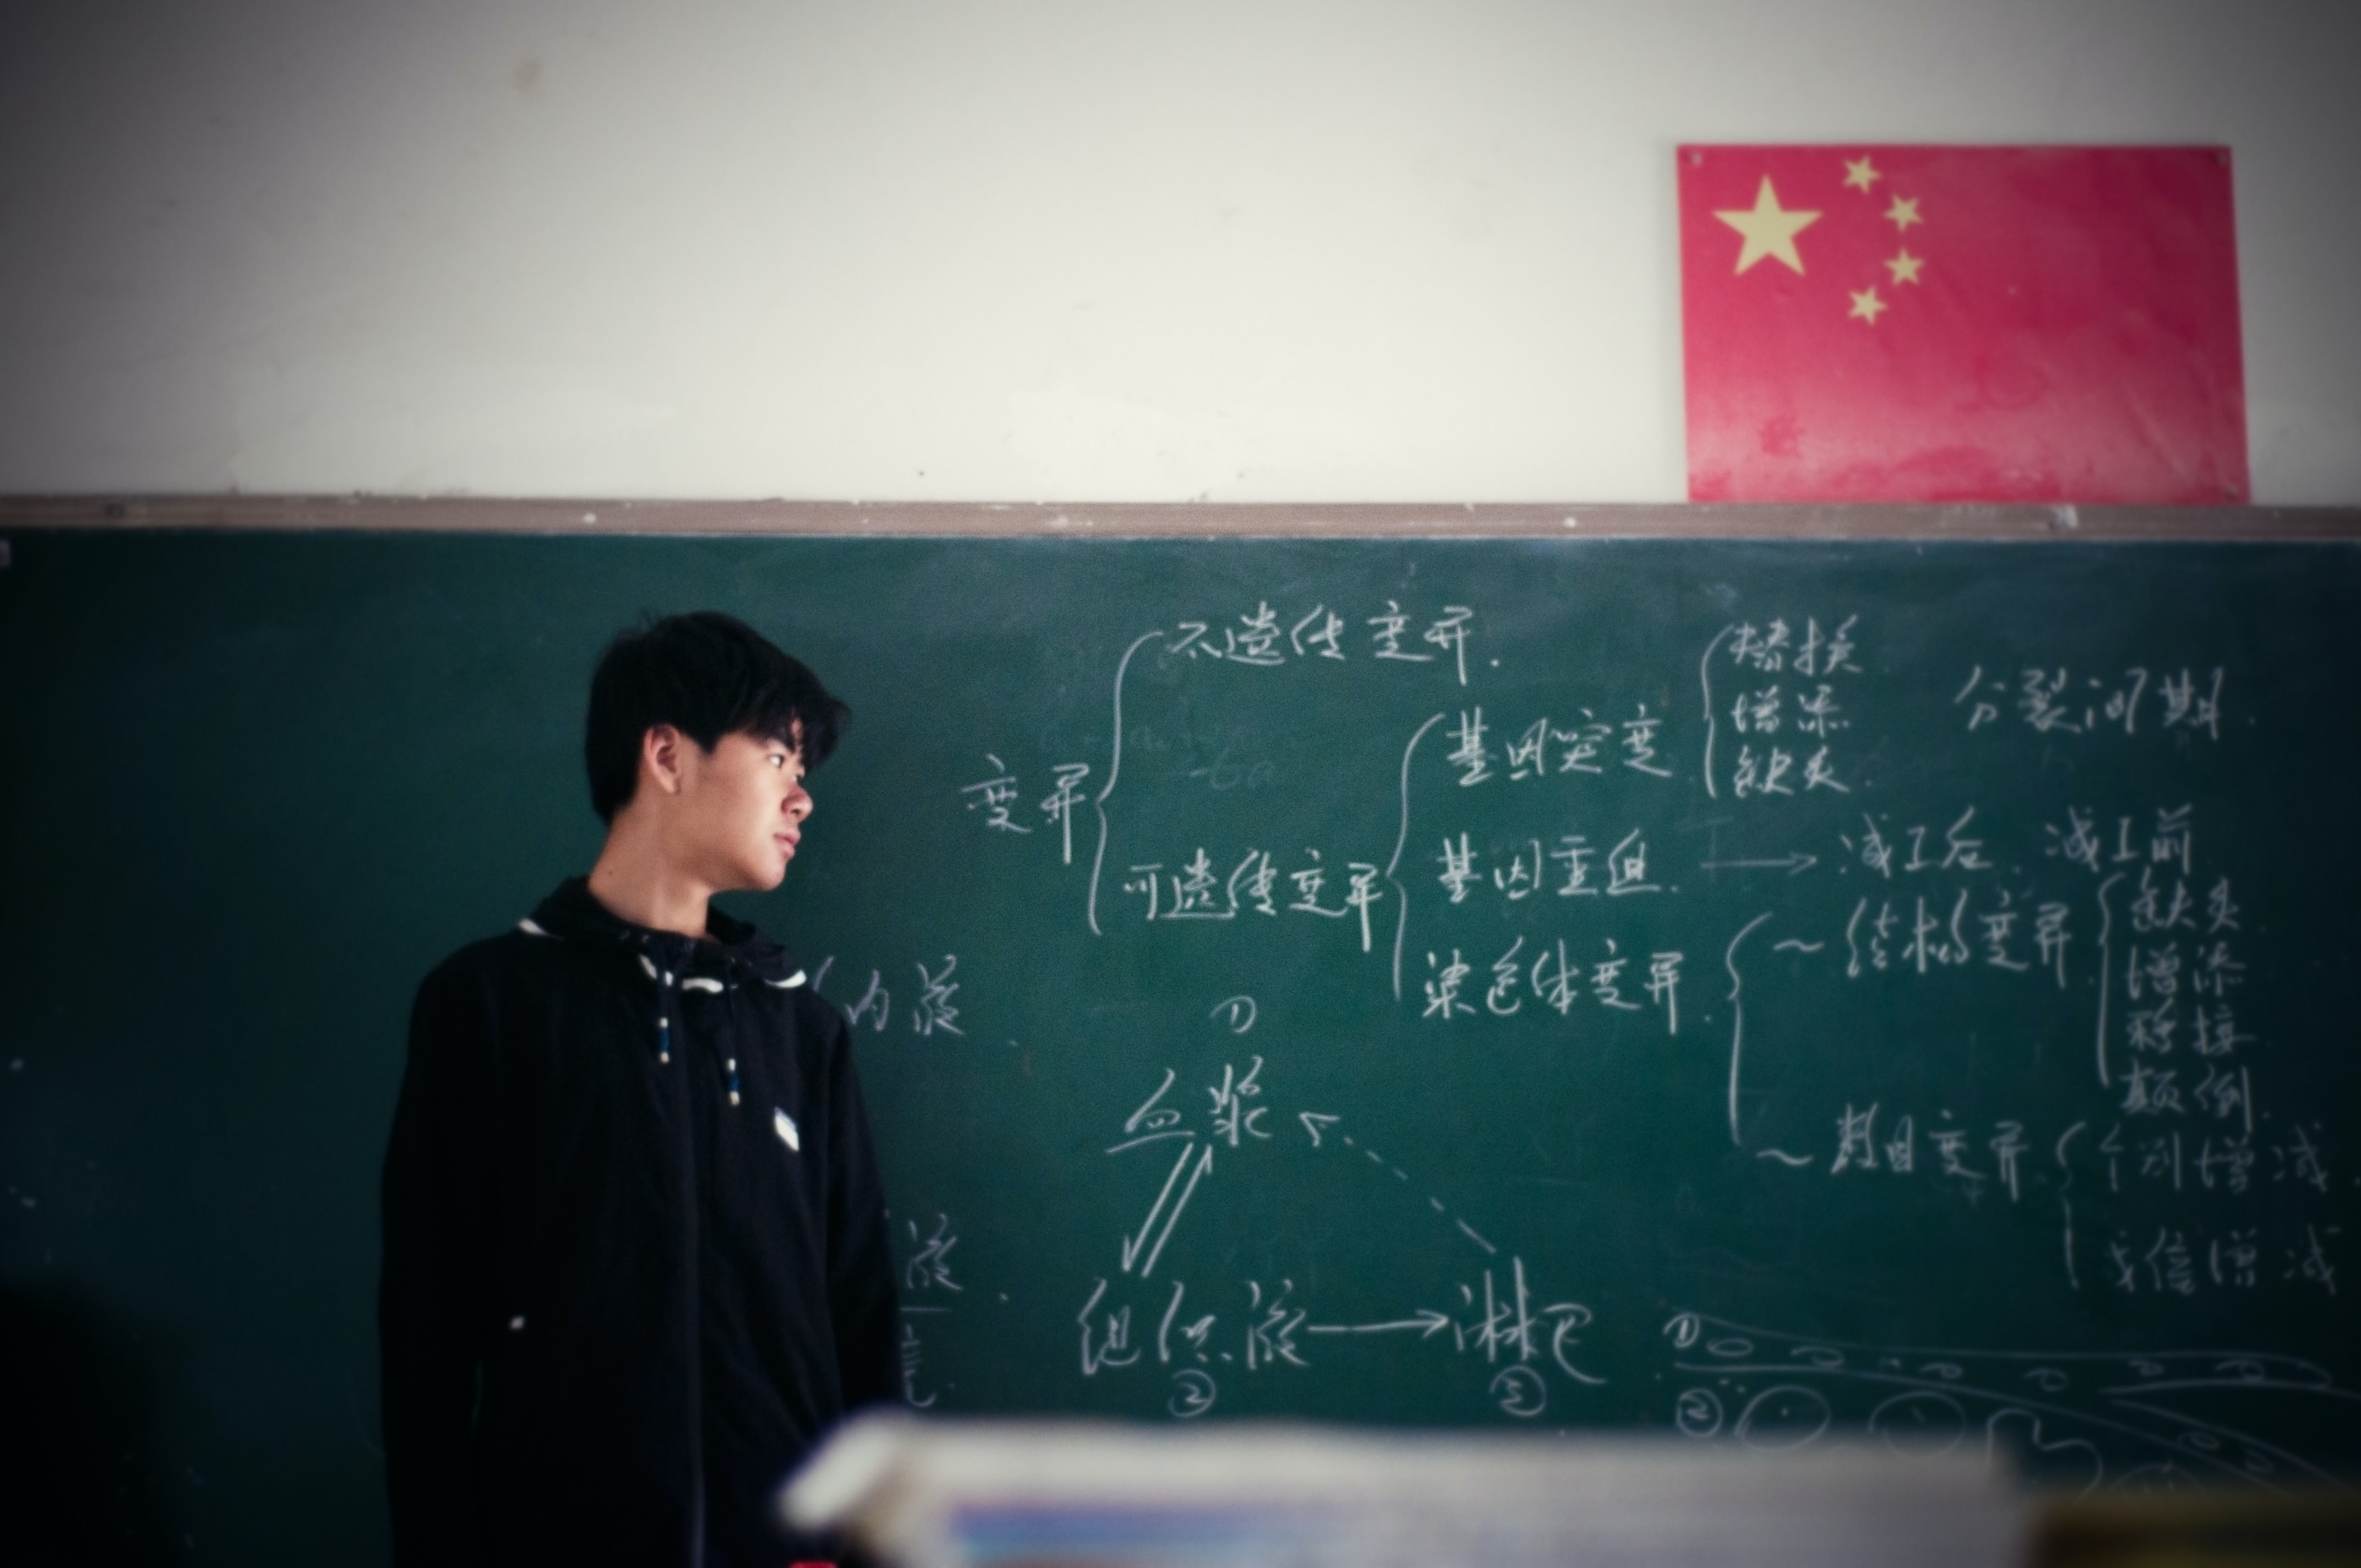 man standing in front of chalkboard inside classroom